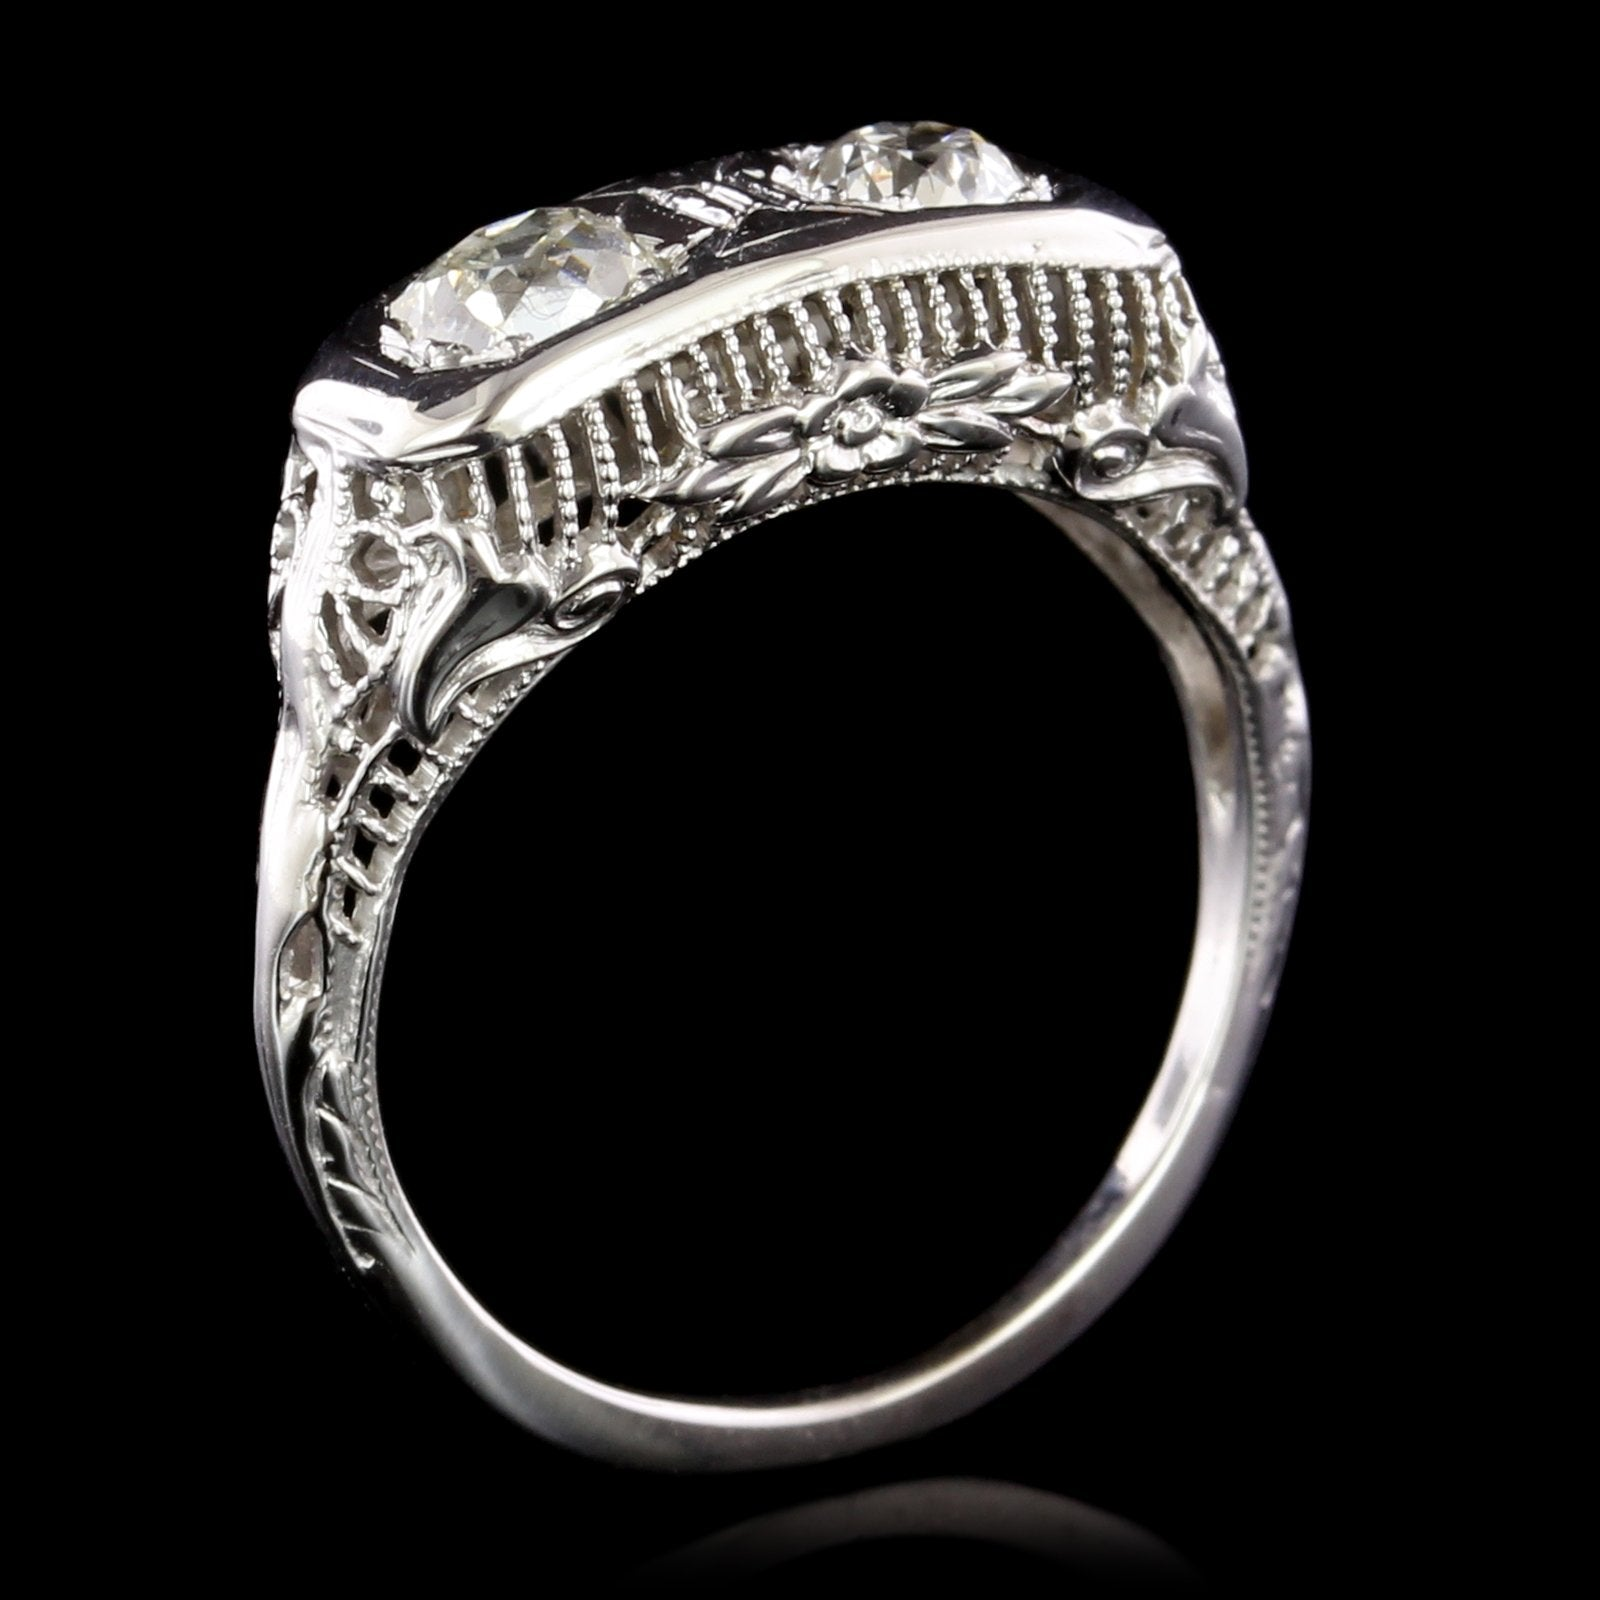 Antique 14K White Gold Estate Diamond Twin-stone Ring